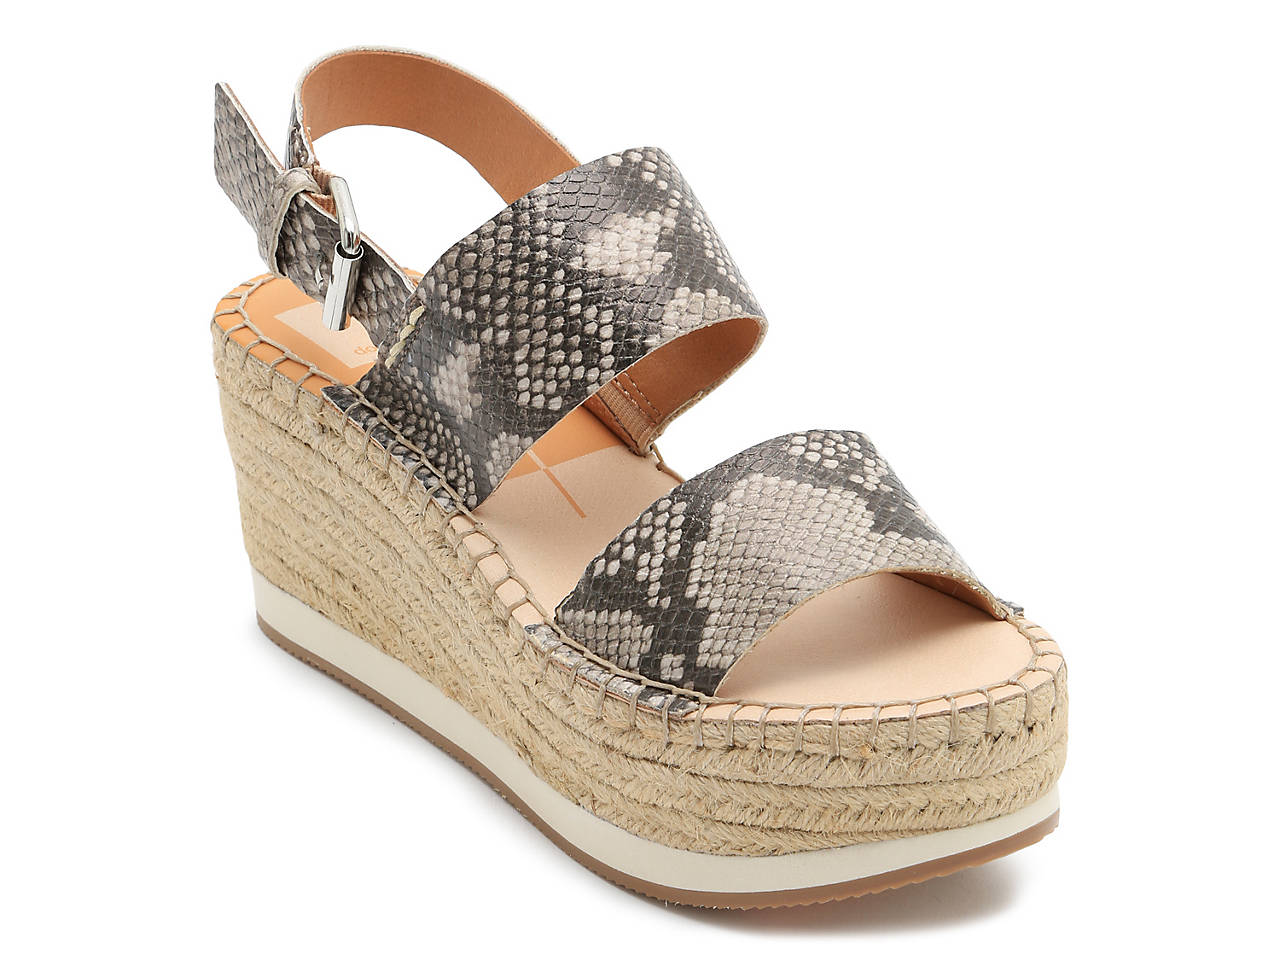 7614a756a7e Dolce Vita Mauri Espadrille Wedge Sandal Women s Shoes